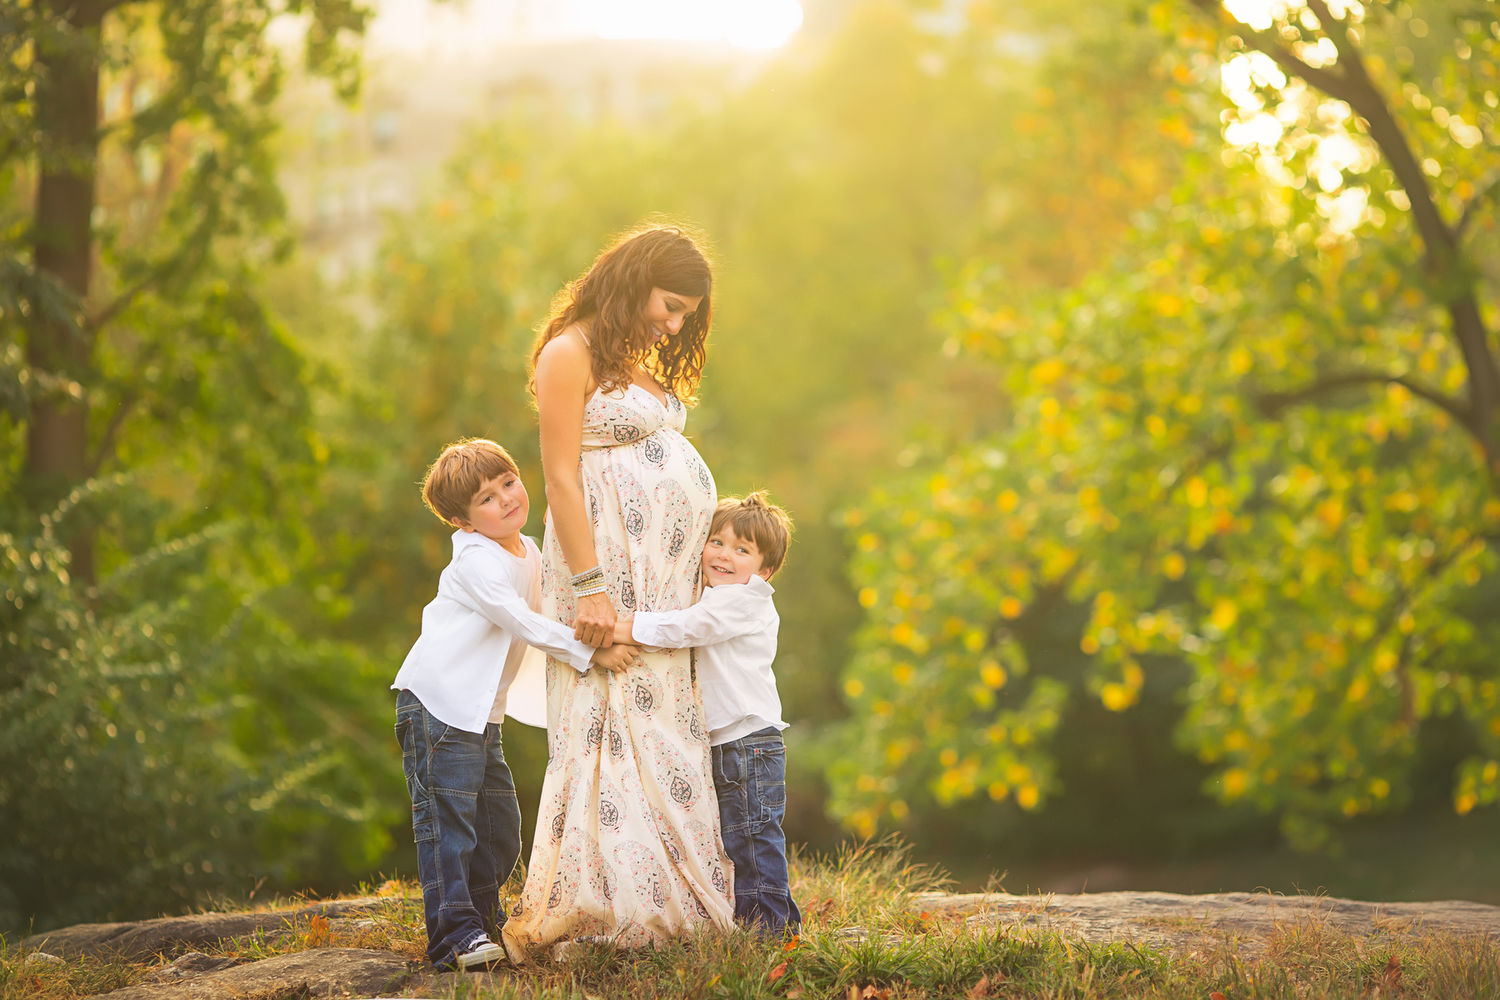 Glowing central park maternity + family session